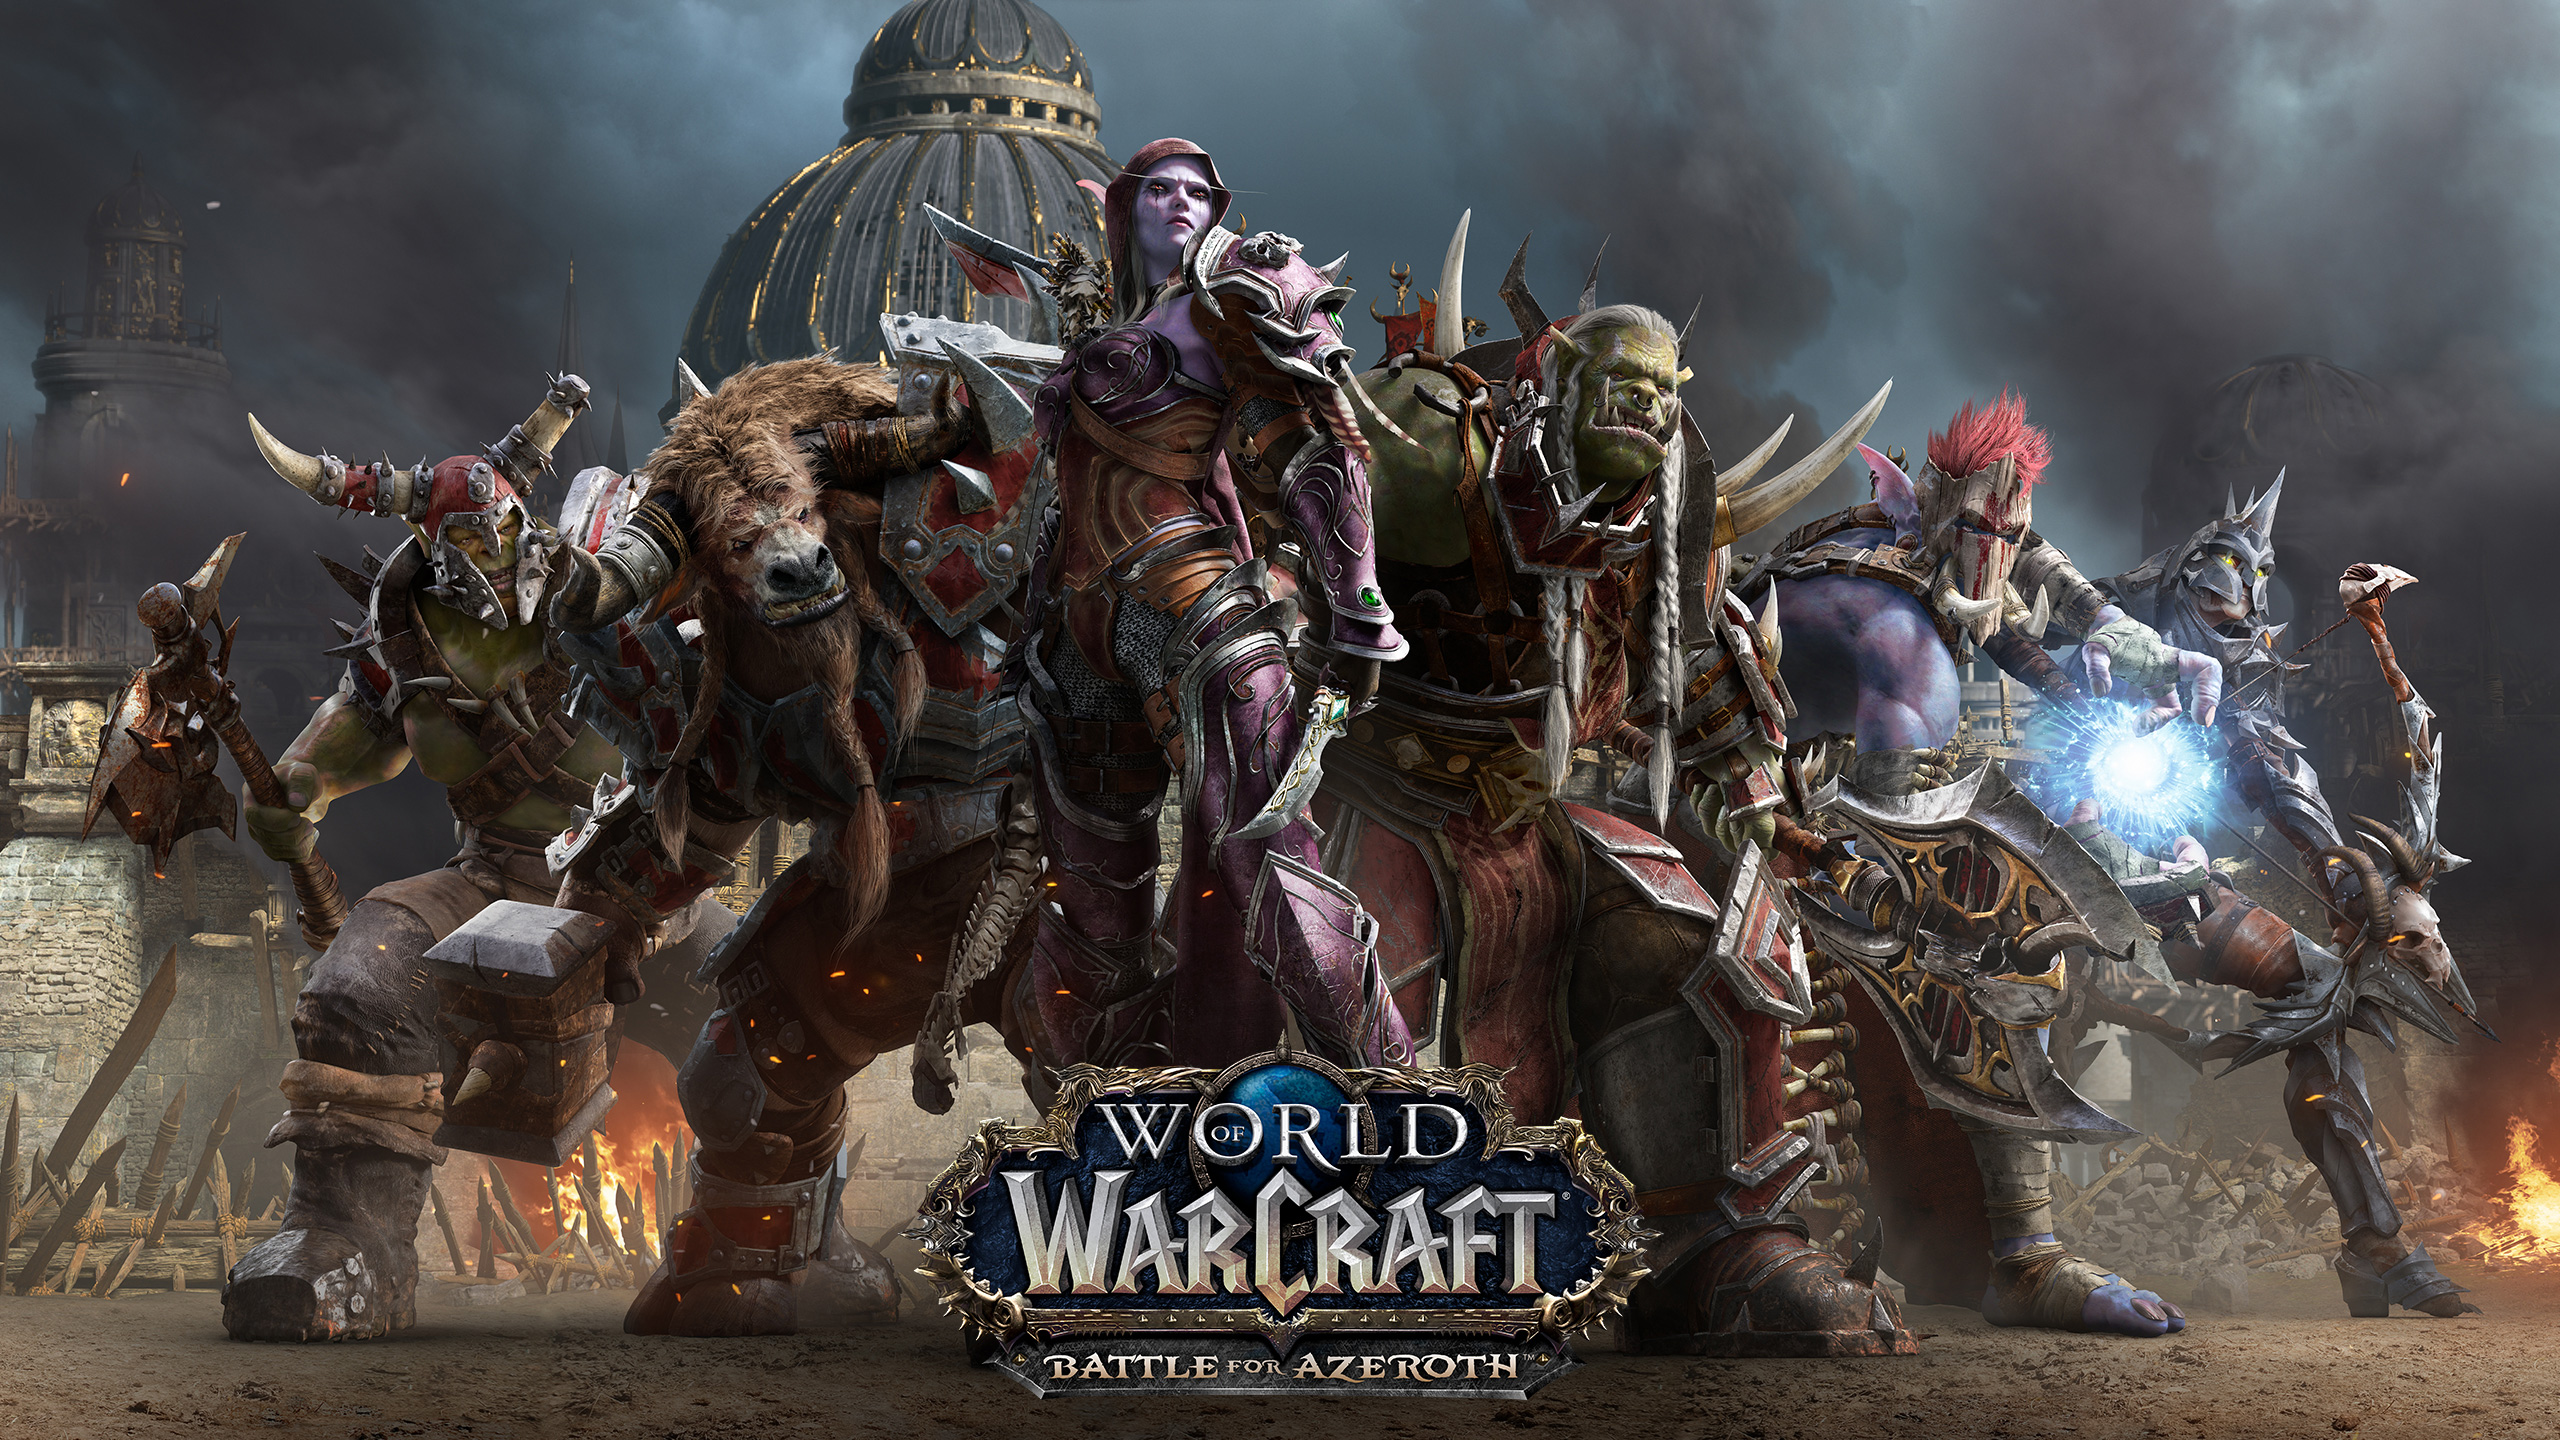 WoW Wallpaper Horde Heroes Battle for Azeroth